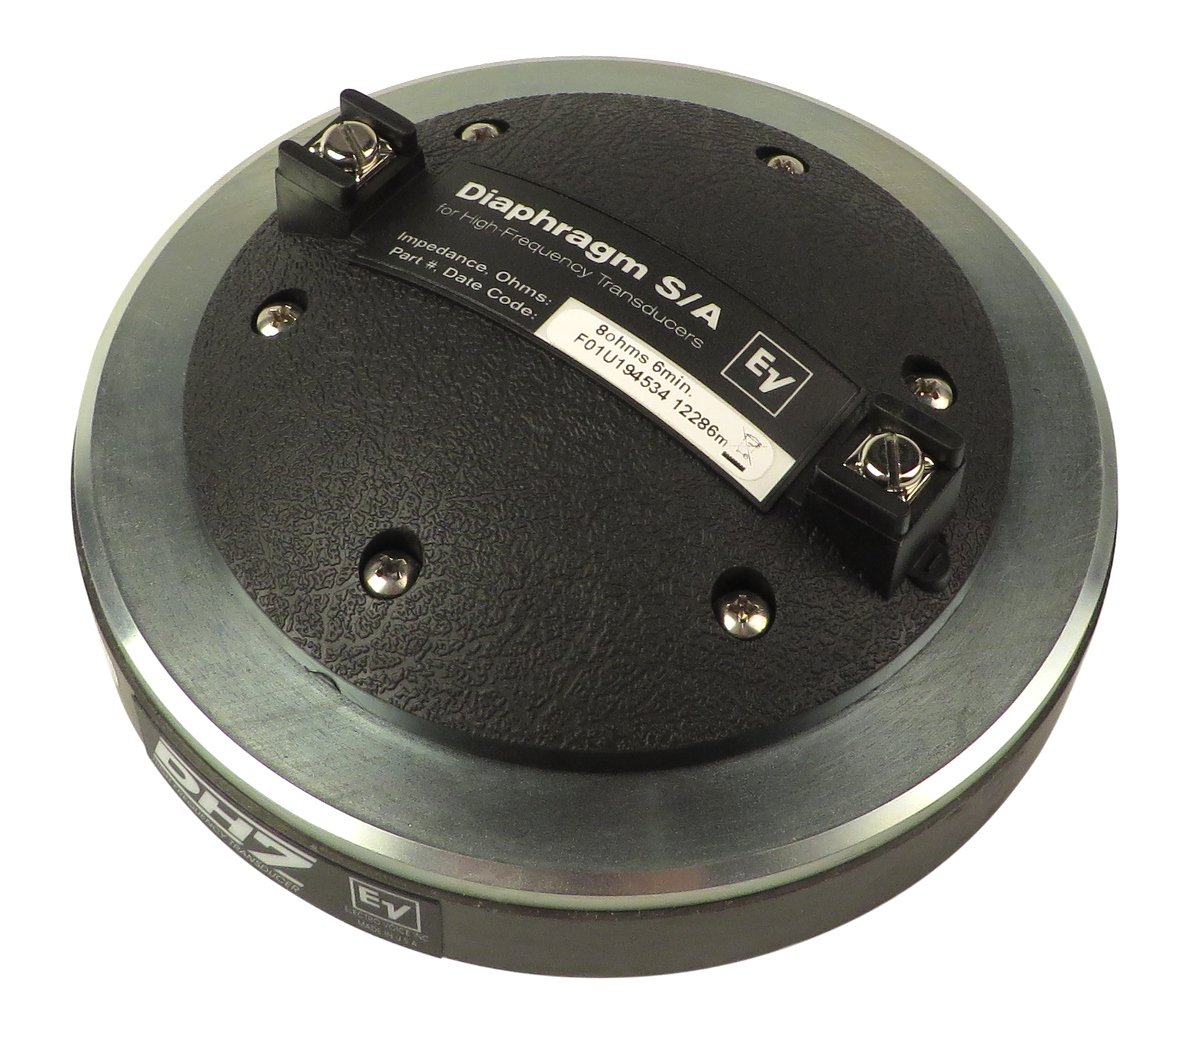 Electro-Voice F.01U.157.374 HF Driver for QRX-153 and QRX-212/75 F.01U.157.374